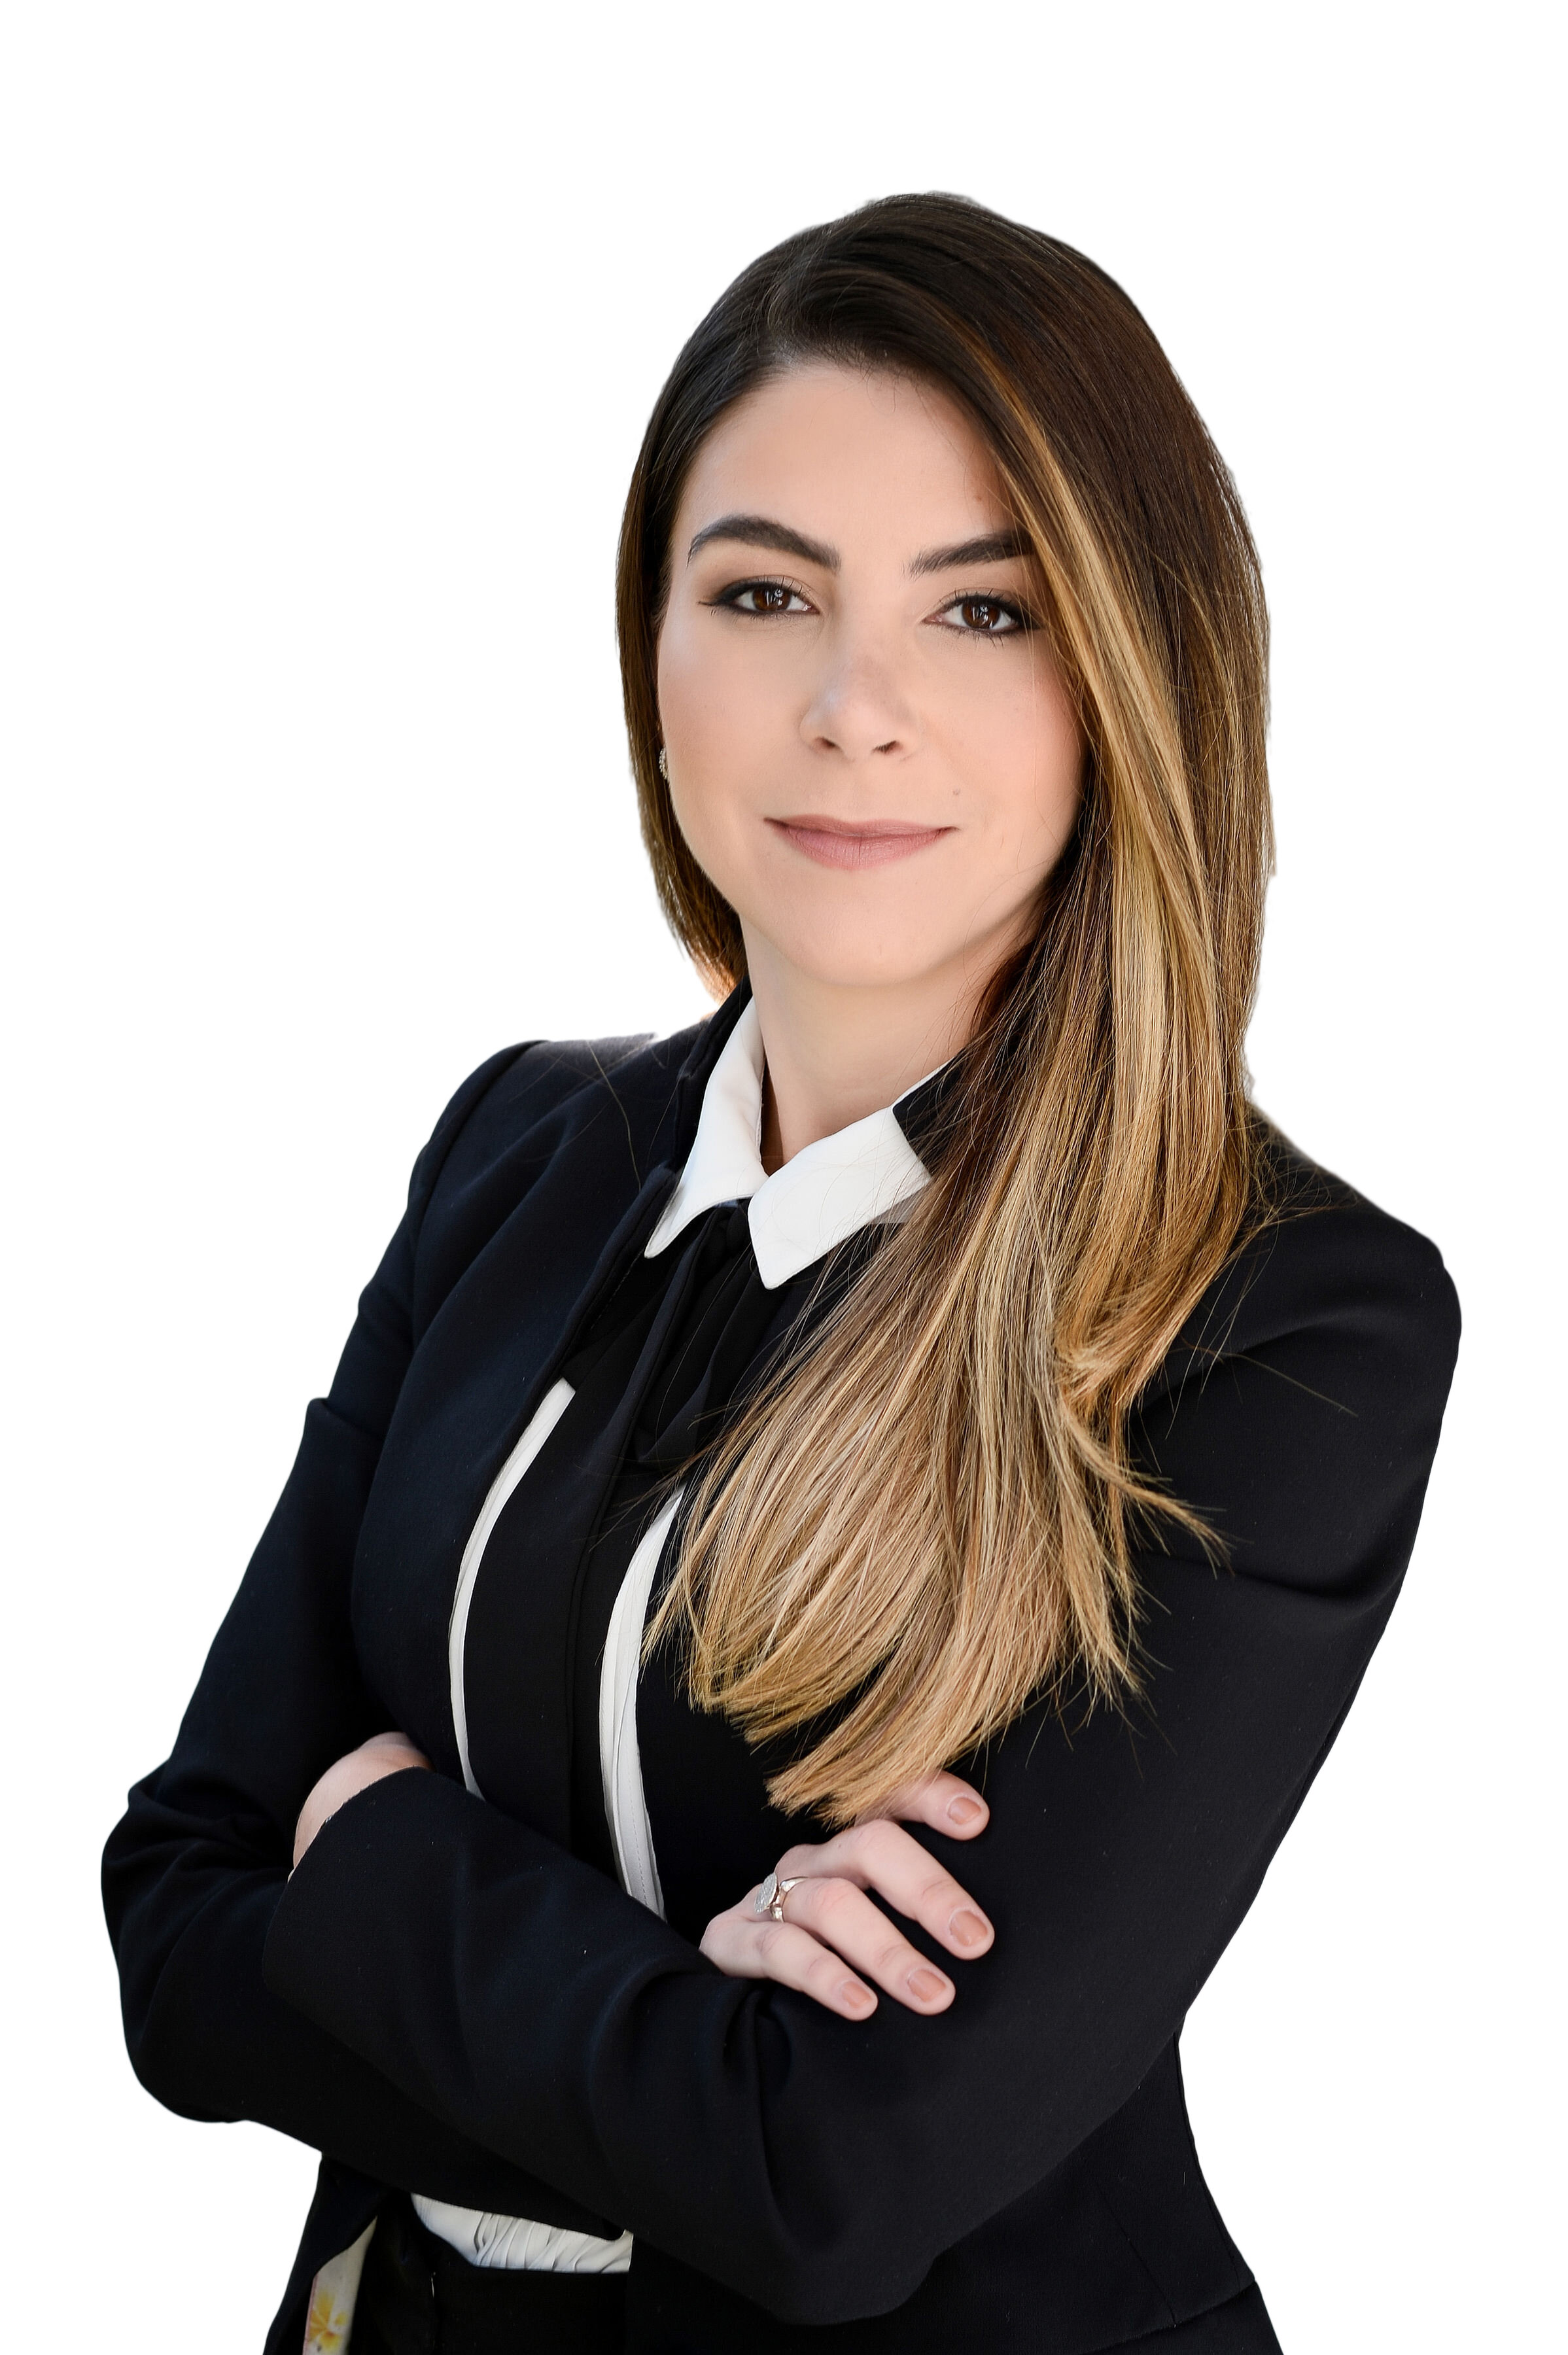 Me Luise Arrais Paiva Rodrigues - Luise Arrais Paiva Rodrigues is a lawyer at Sheri M. Spunt Avocate Inc. since 2019.Luise was accepted into law school at 16 years old at Cesupa – Centro Universitário do Pará, in her home town of Brazil. She completed her bachelors of law in 2008 while working full-time at her mother's law firm in the heart of the Amazon. She was called to the Brazilian Bar in 2009.At a young age, Luise developed a passion for family law. While pursuing her law degree and practising in Brazil, she was mentored by her mother, who is one of the most influential family lawyers in the north of Brazil.After moving to Montreal, Luise studied at Université de Montreal in order to obtain her law certificate to practice in Quebec. Understanding the multiculturalism of our country and in order to better serve her international clientele, Luise did her stage at an immigration law firm.Luise was called to the Quebec Bar in 2017 and had her own practice until she joined our firm in 2019.Today, she brings her experience in international family law, Brazillian family law, and immigration law to our firm to service both our local and international clients during one of the most difficult time of their lives.